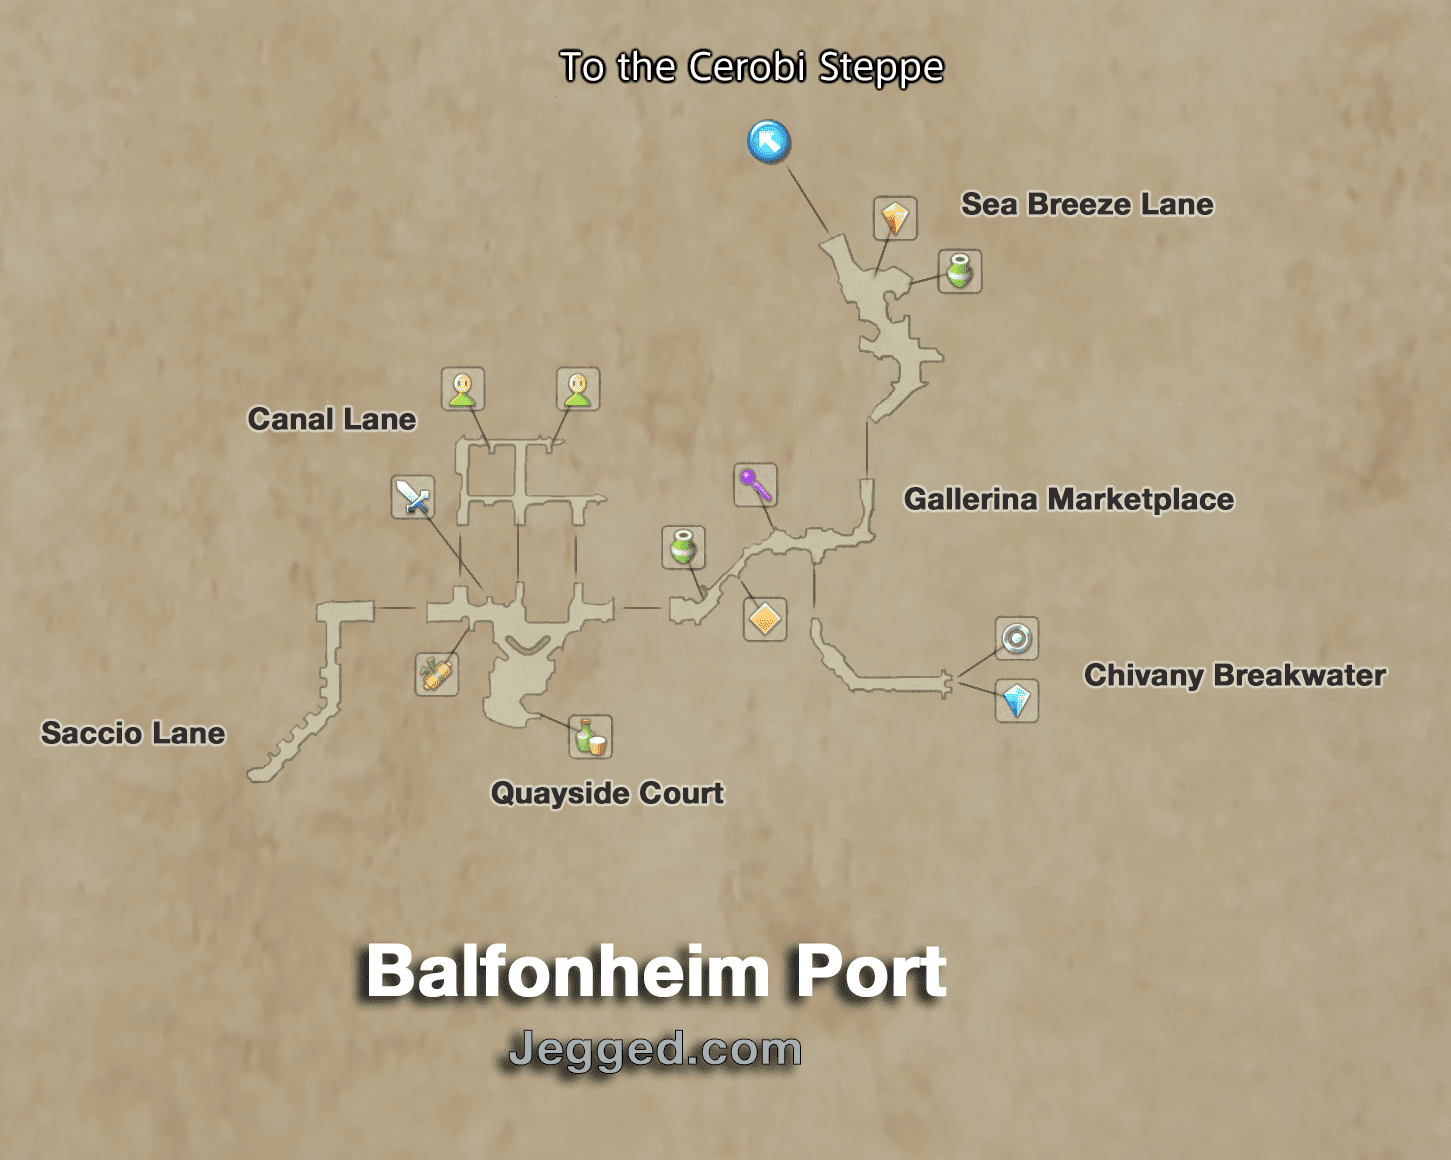 Map of the Port of Balfonheim